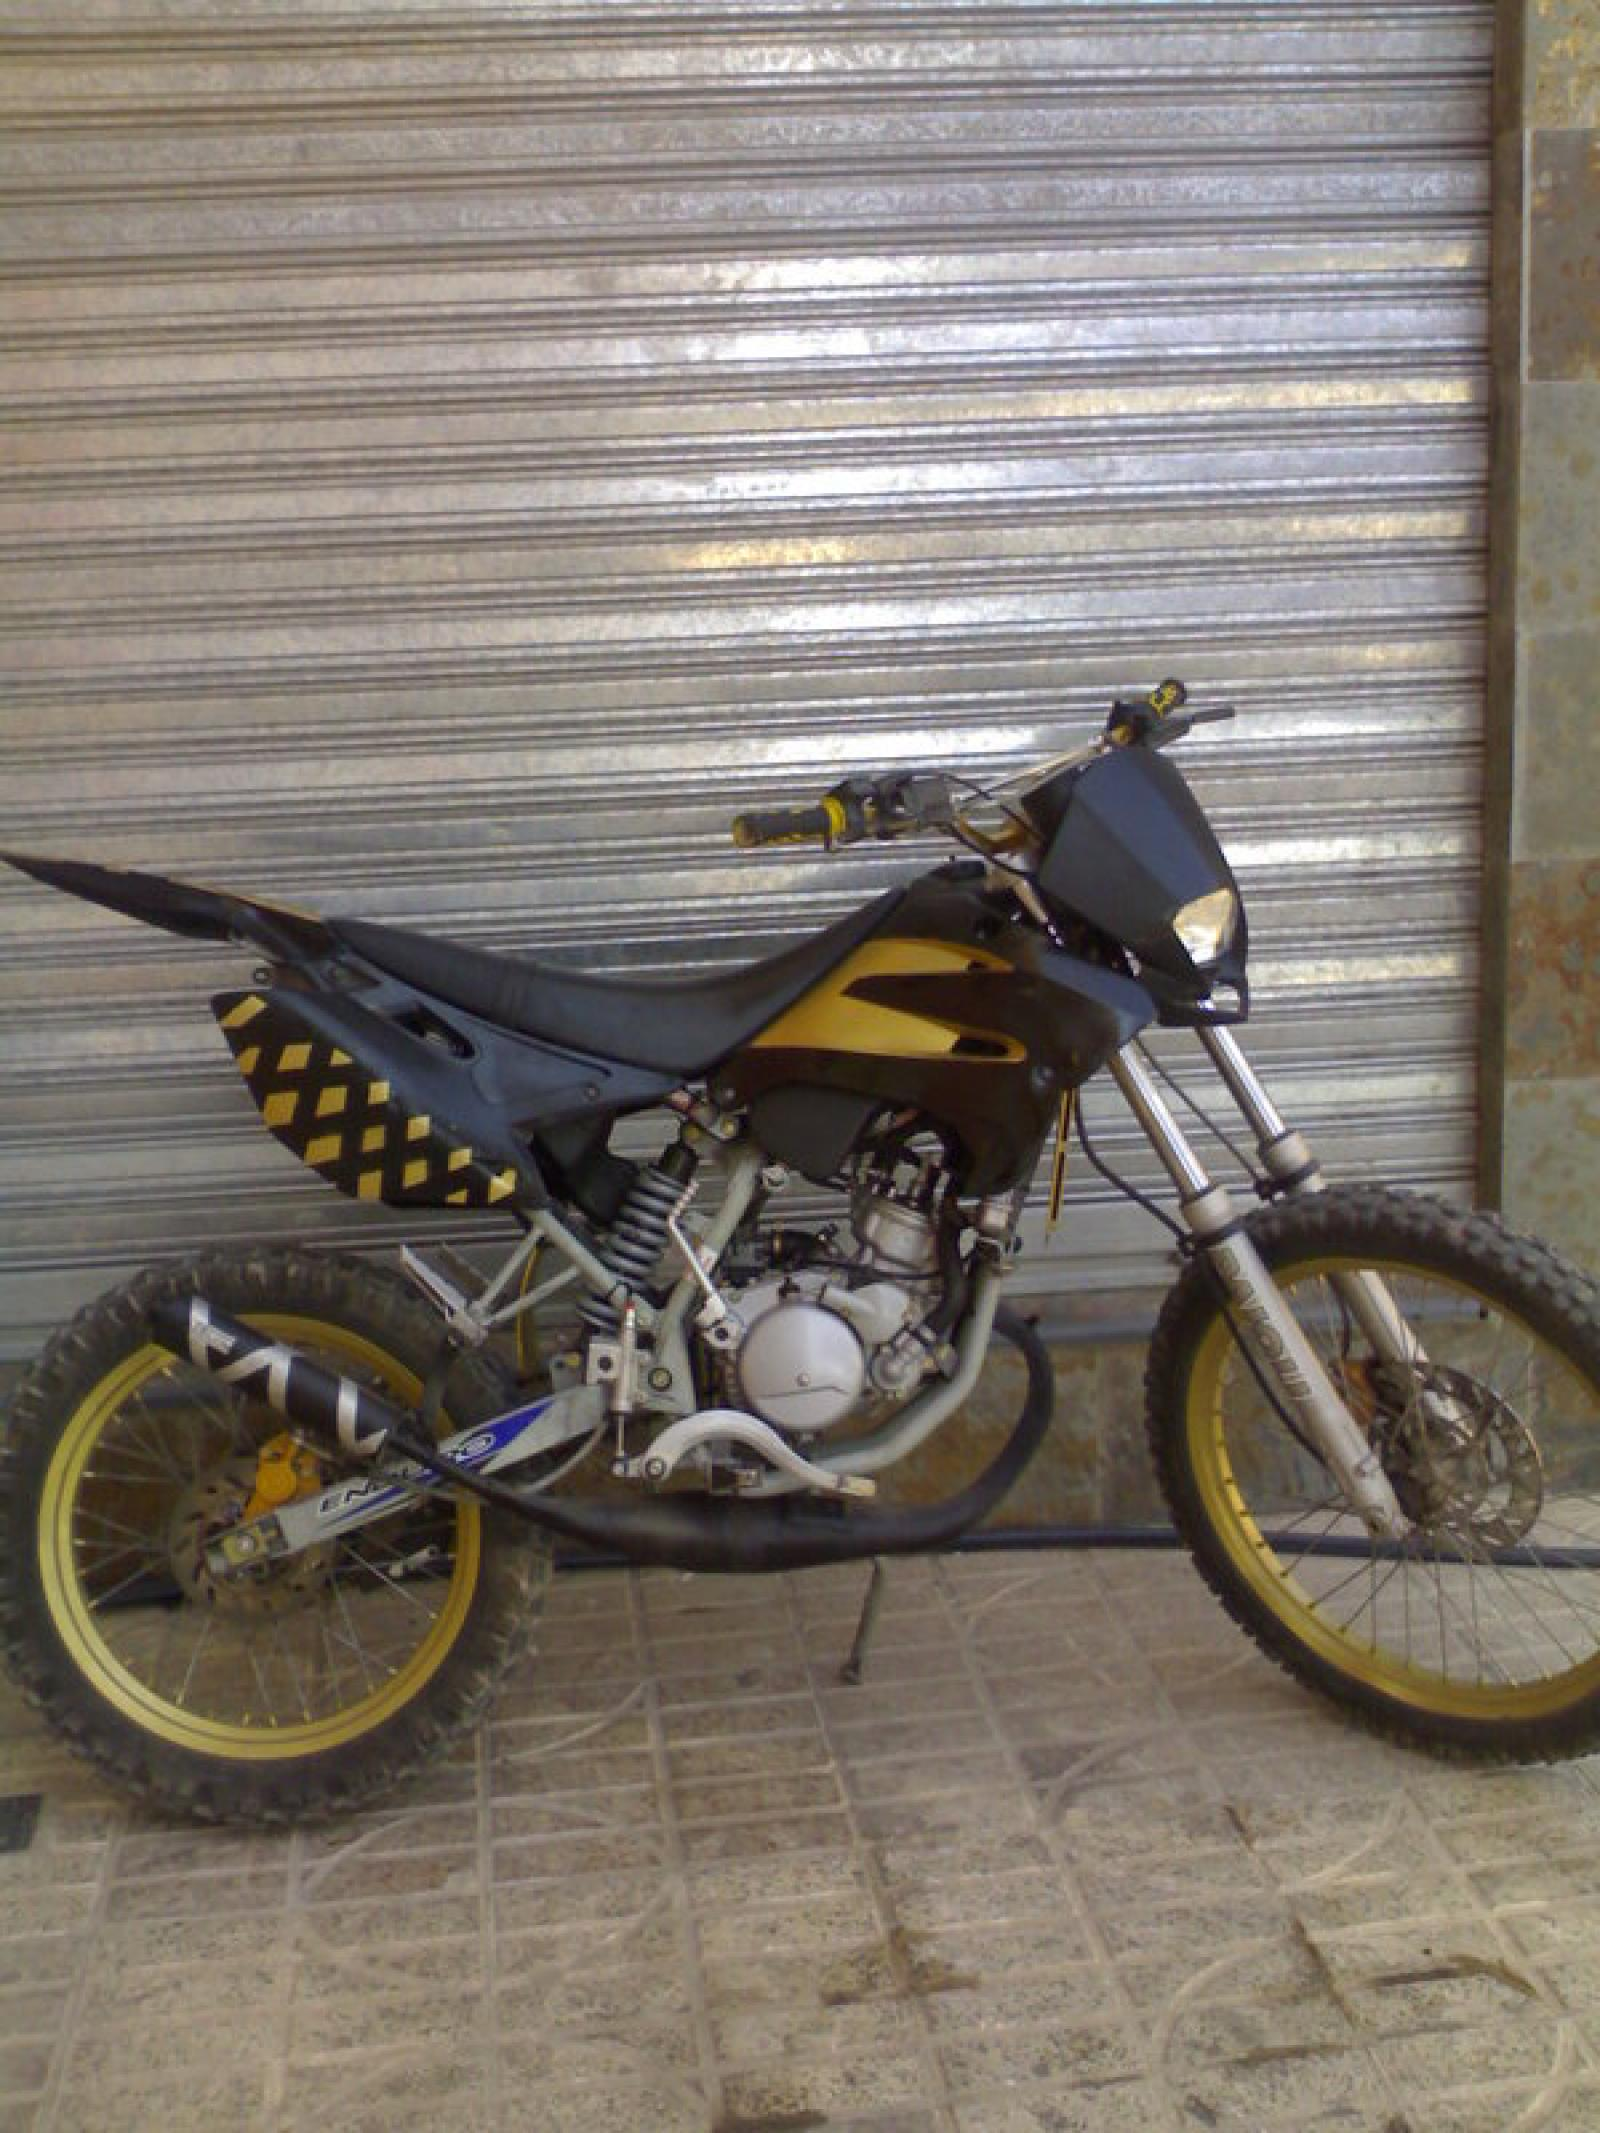 Motorhispania Furia Max Super Motard 2006 images #112192